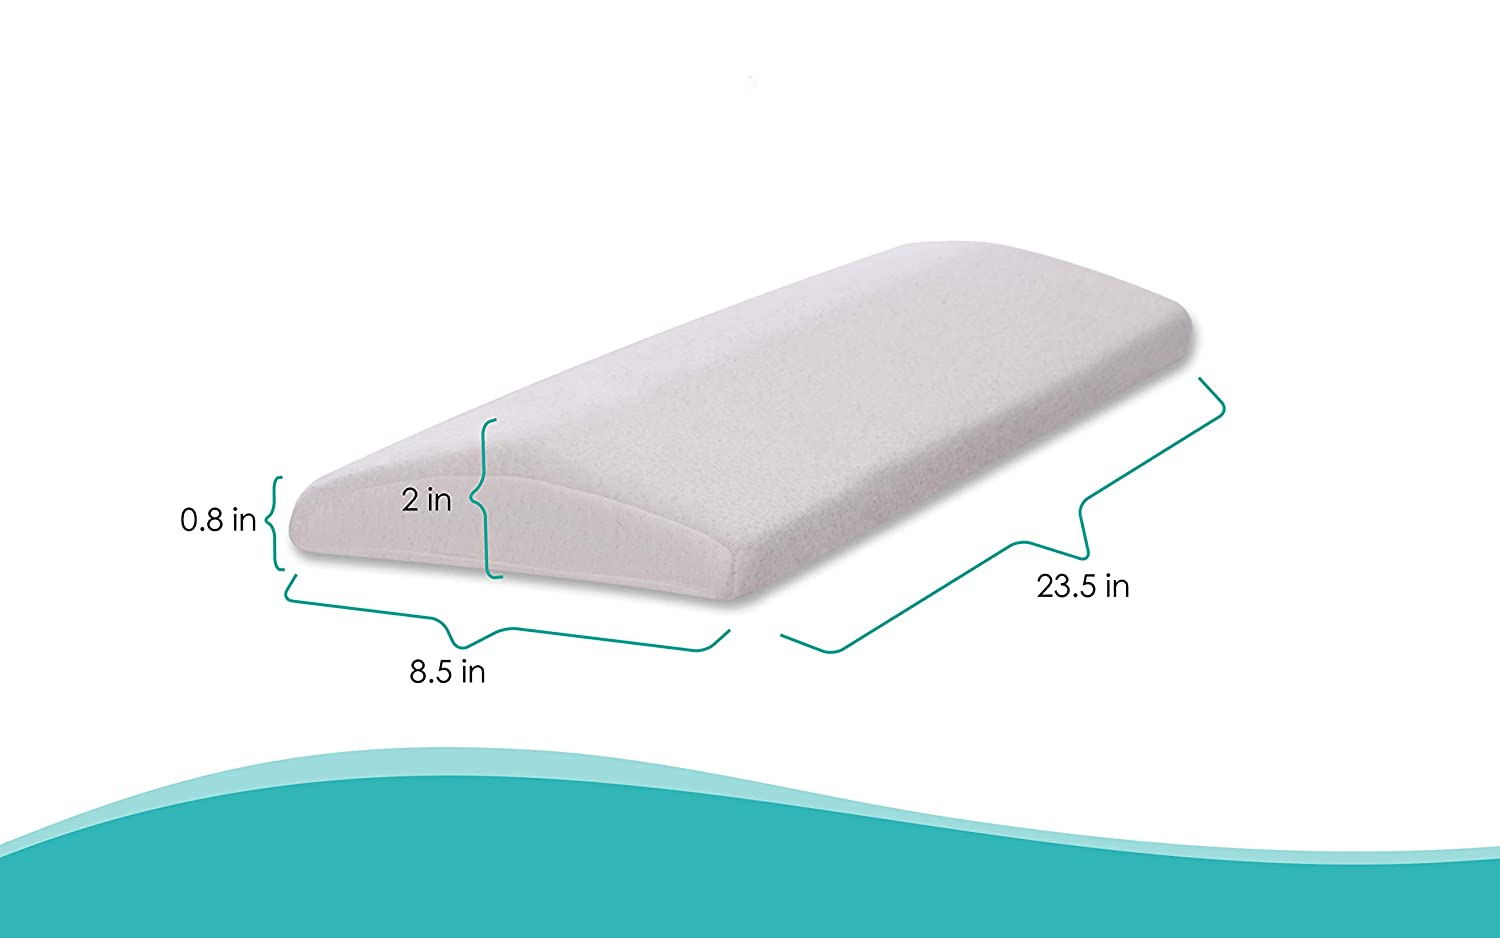 Ergonomic Memory Foam with Heat Dissipating Cool Gel PandasPillow Cooling Lumbar Support Pillow for Sleeping Back Pain Washable Hypoallergenic Bamboo Cover